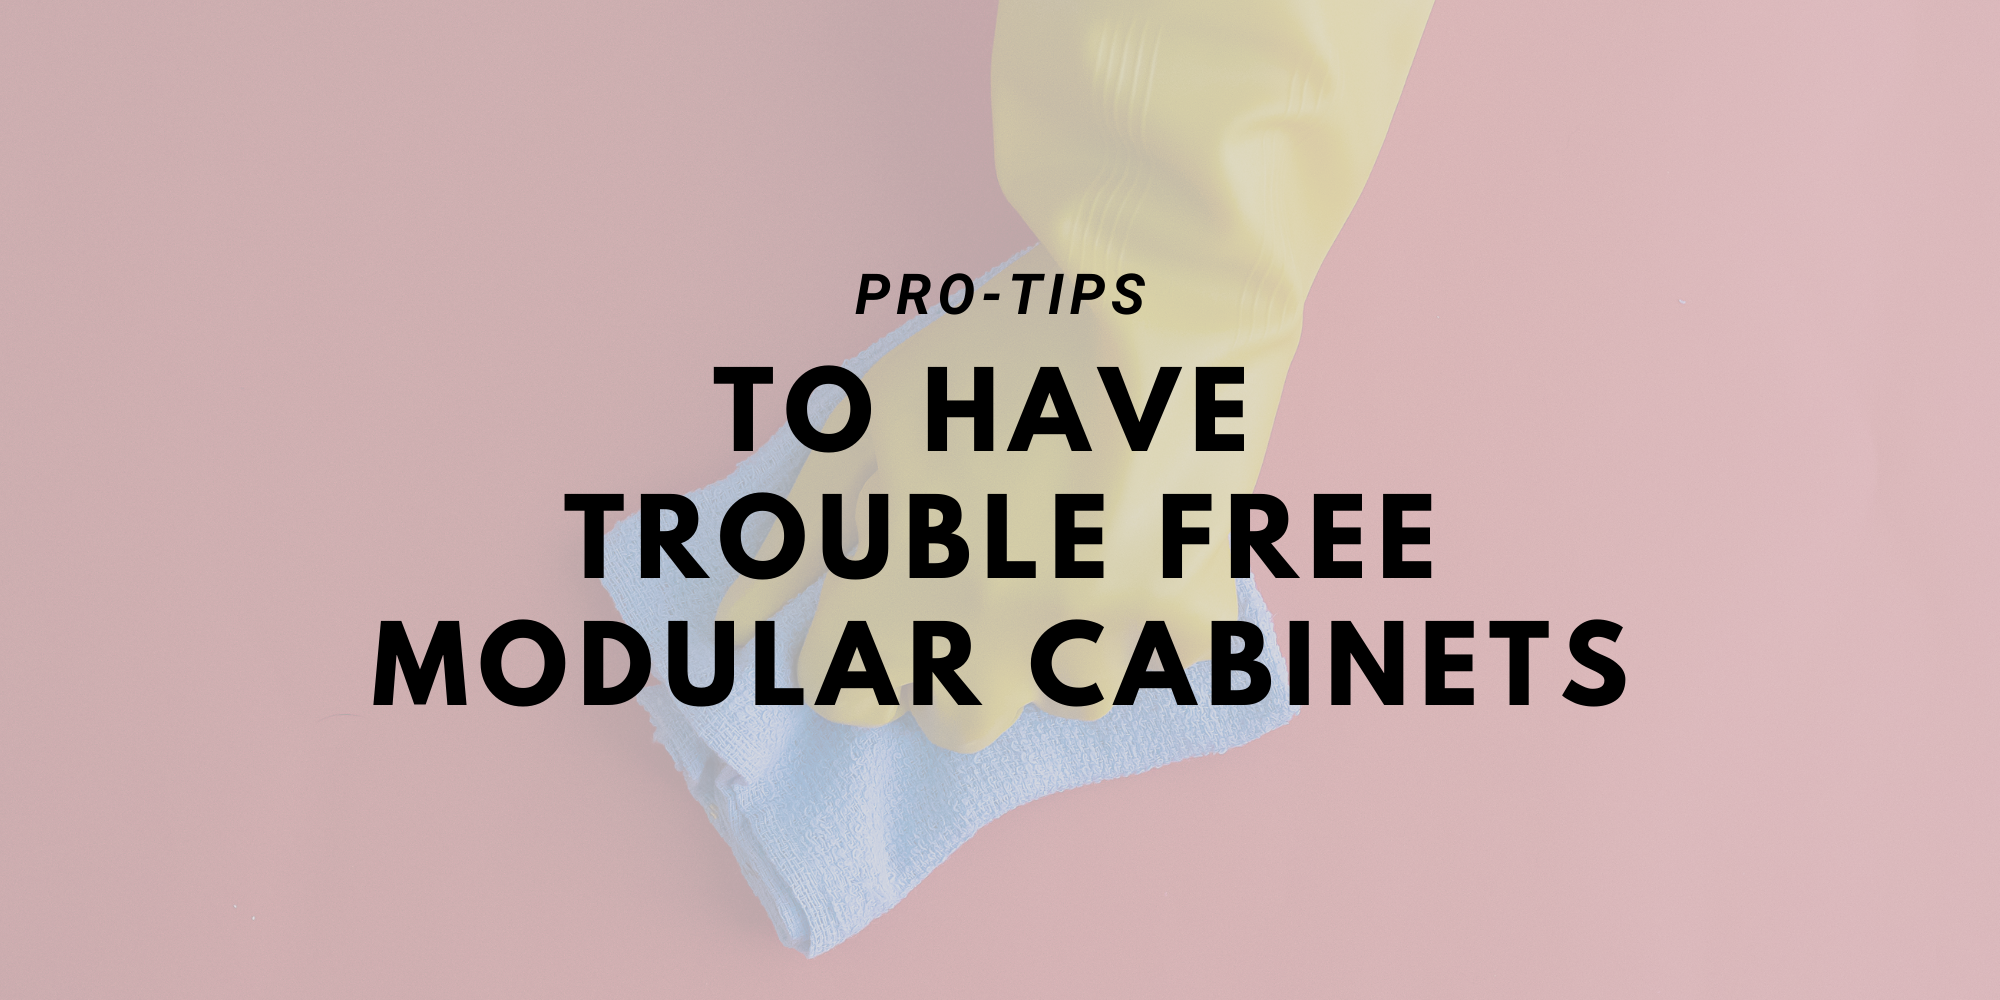 Tips to have trouble free modular cabinets